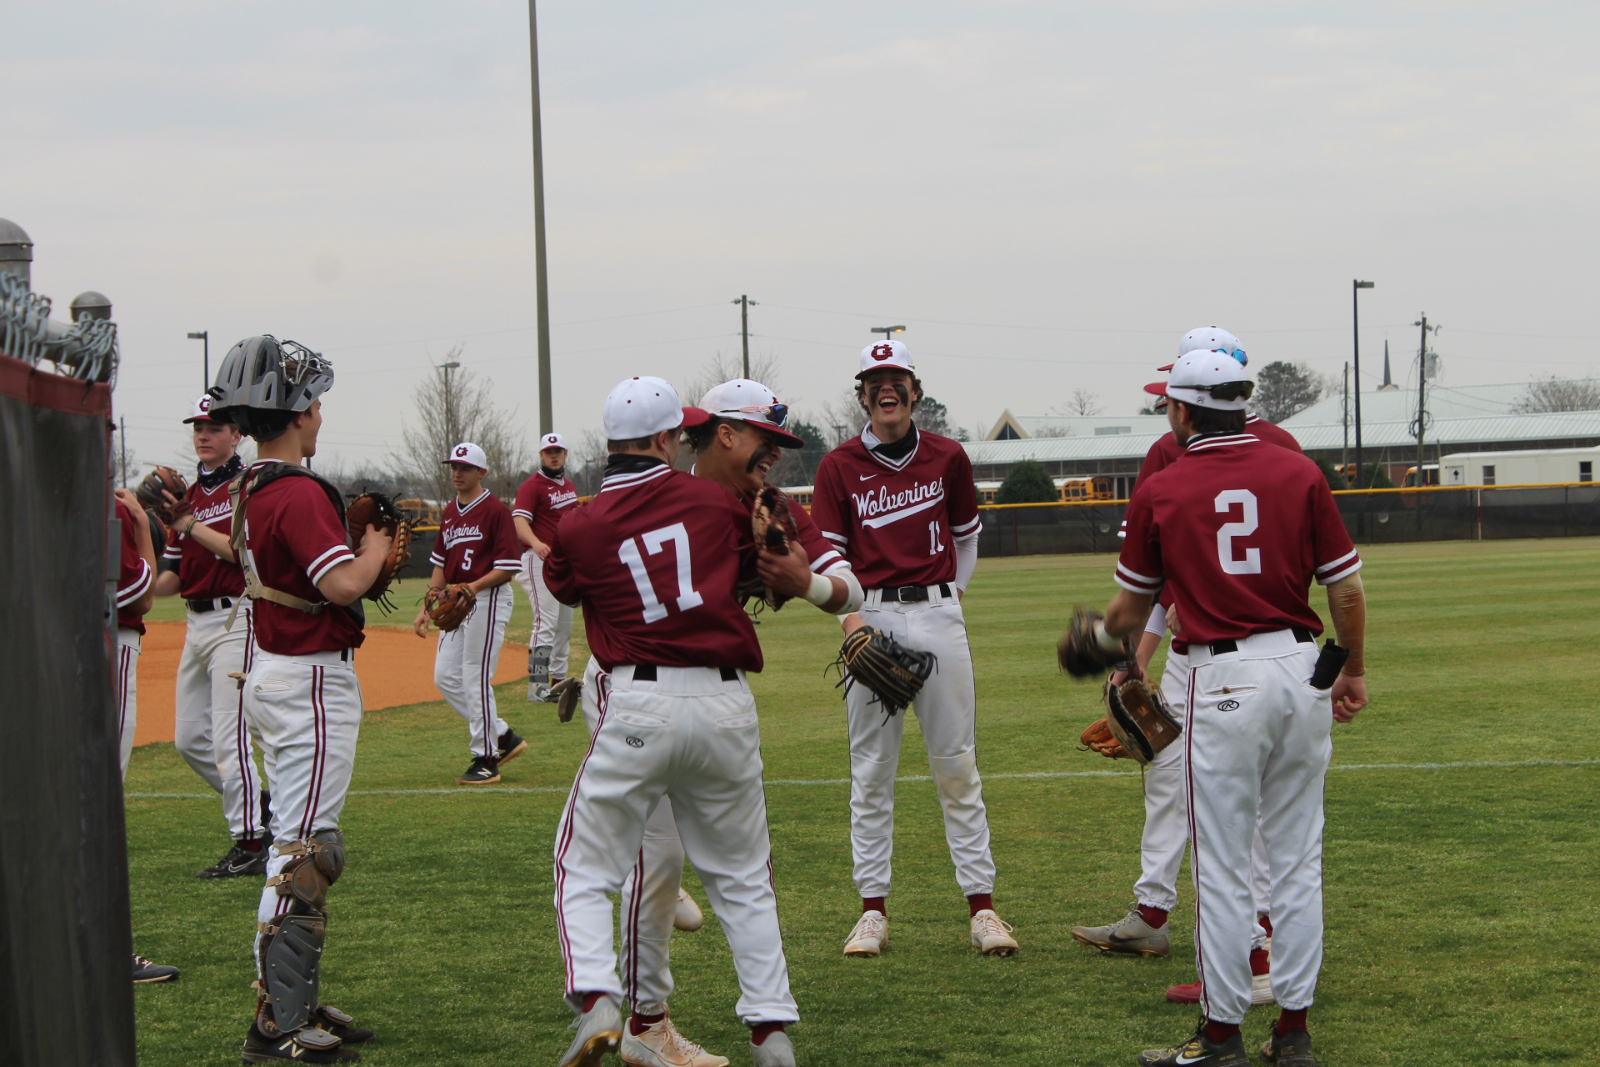 Spring Sports Photos – Taken By Nolan Harper (UGHS Athletic Information and Management Intern)